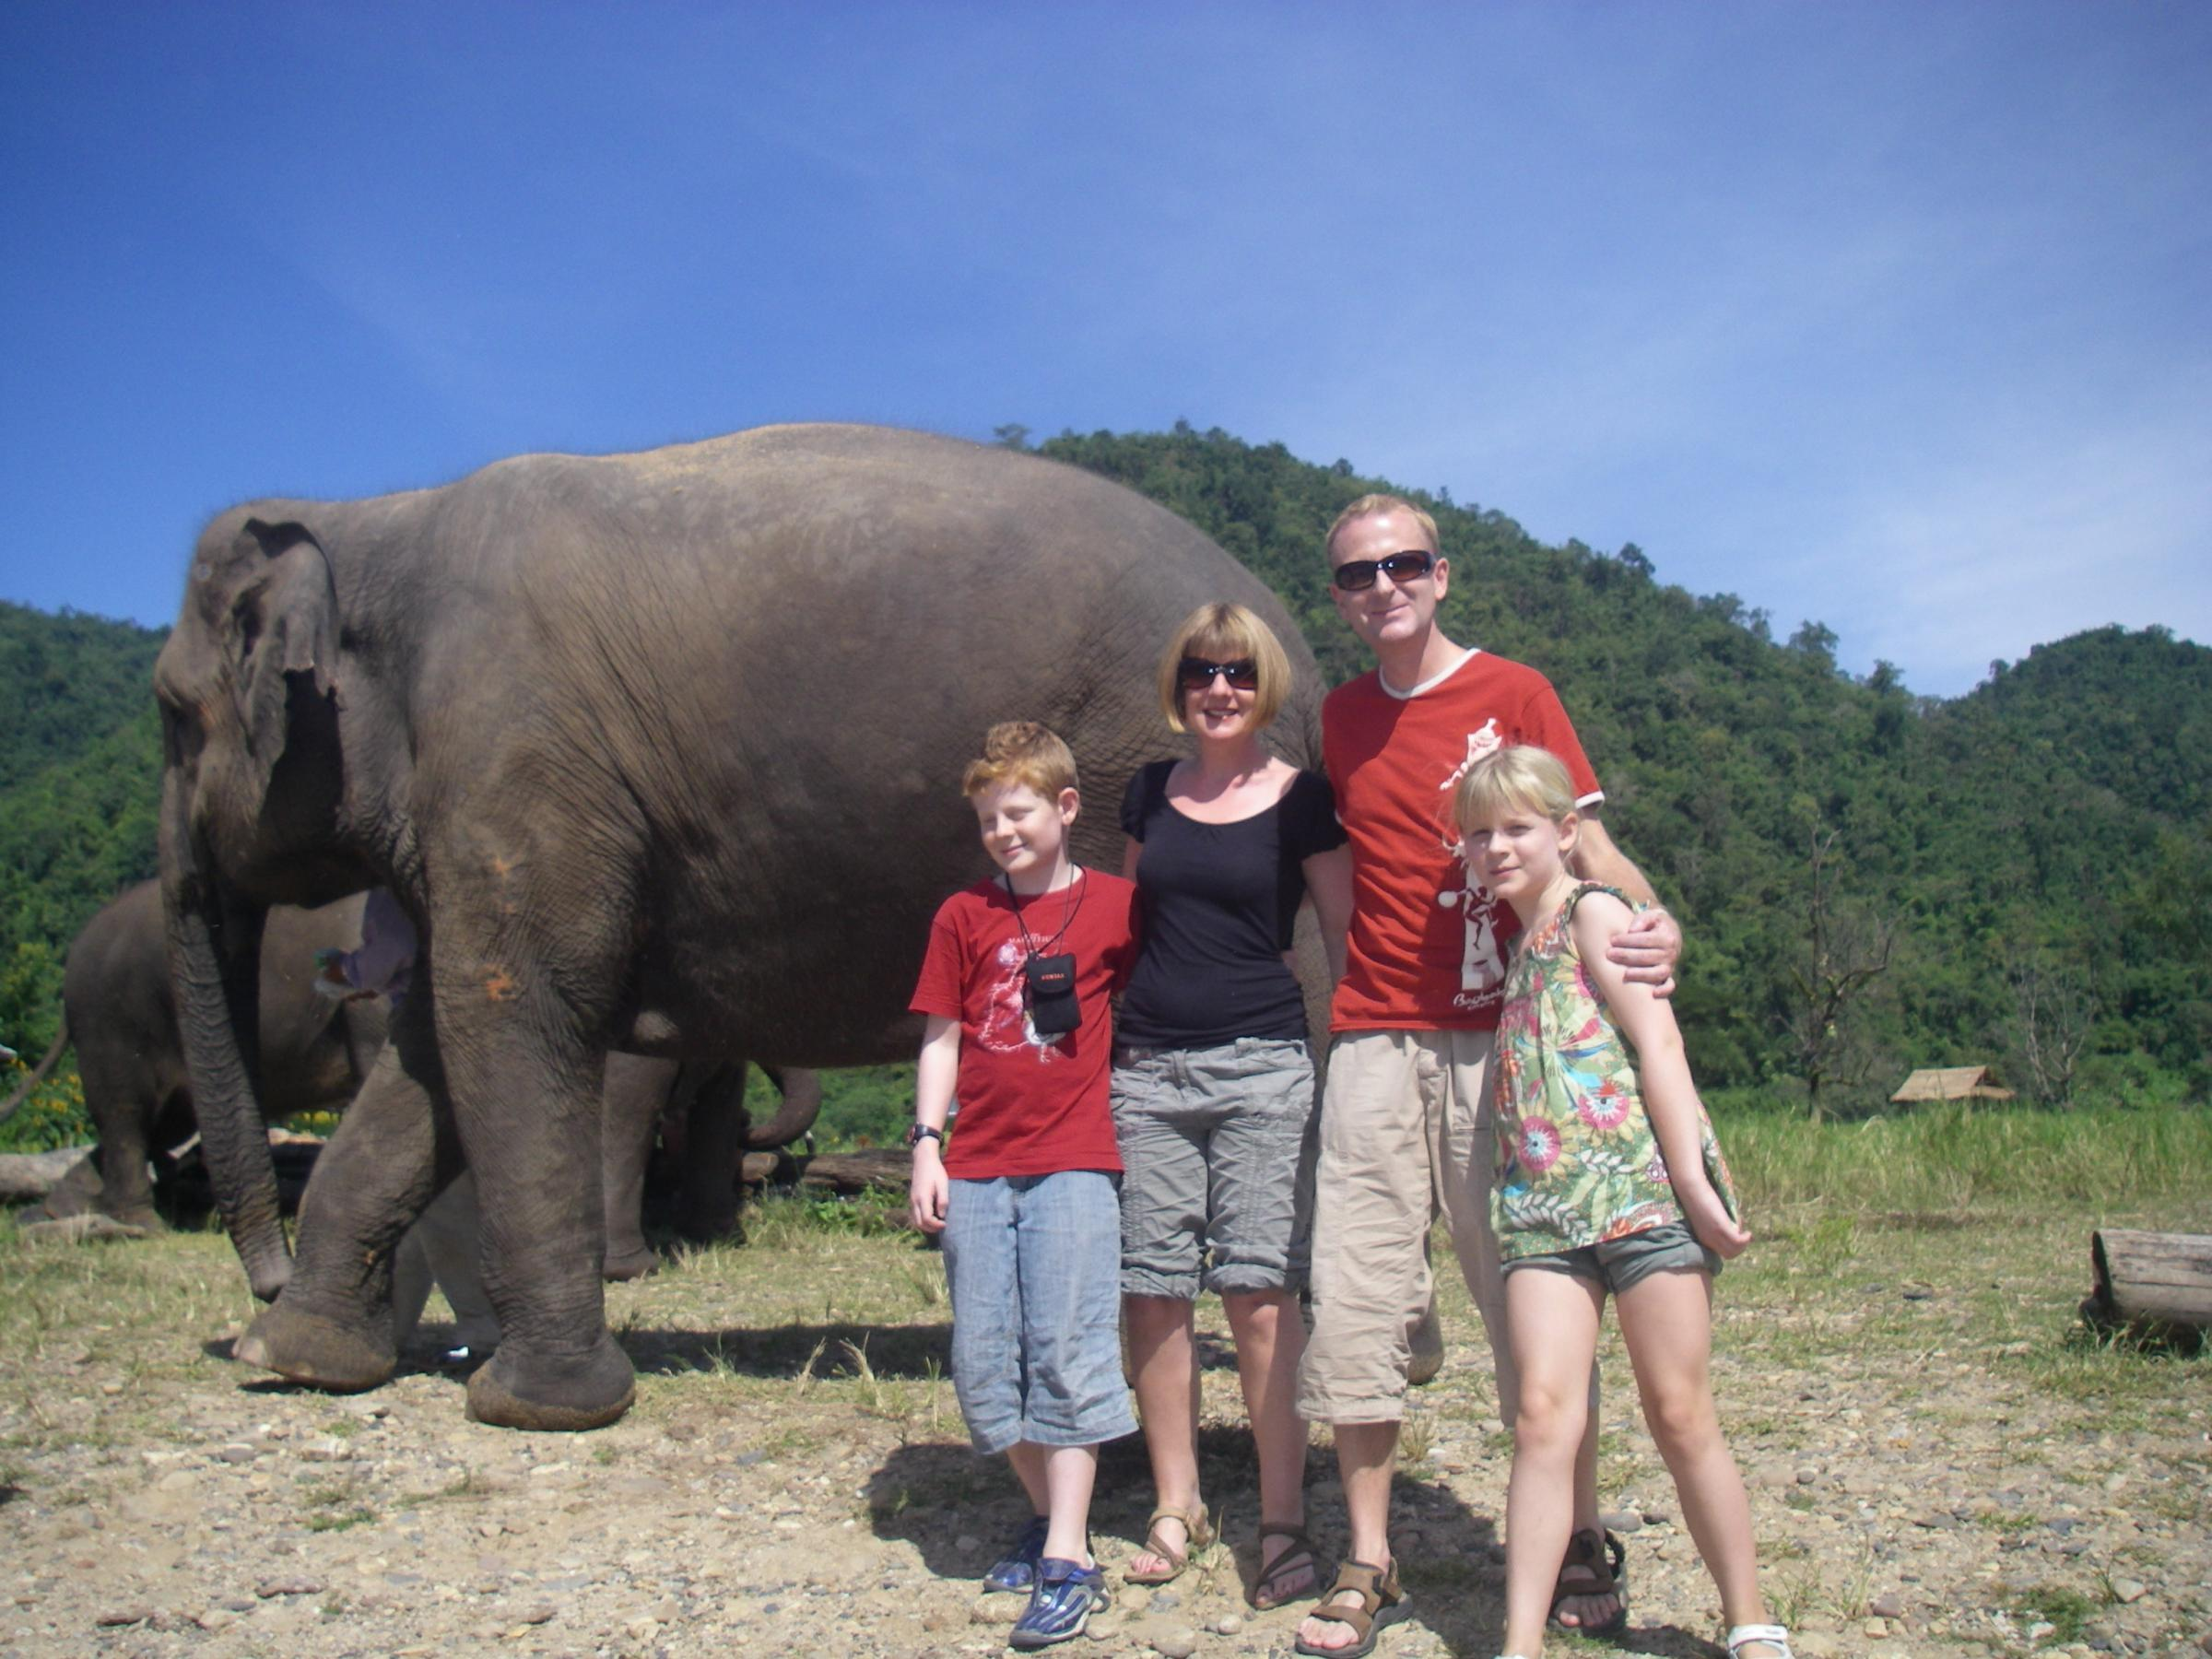 The family visited Thailand during the tour through Asia.